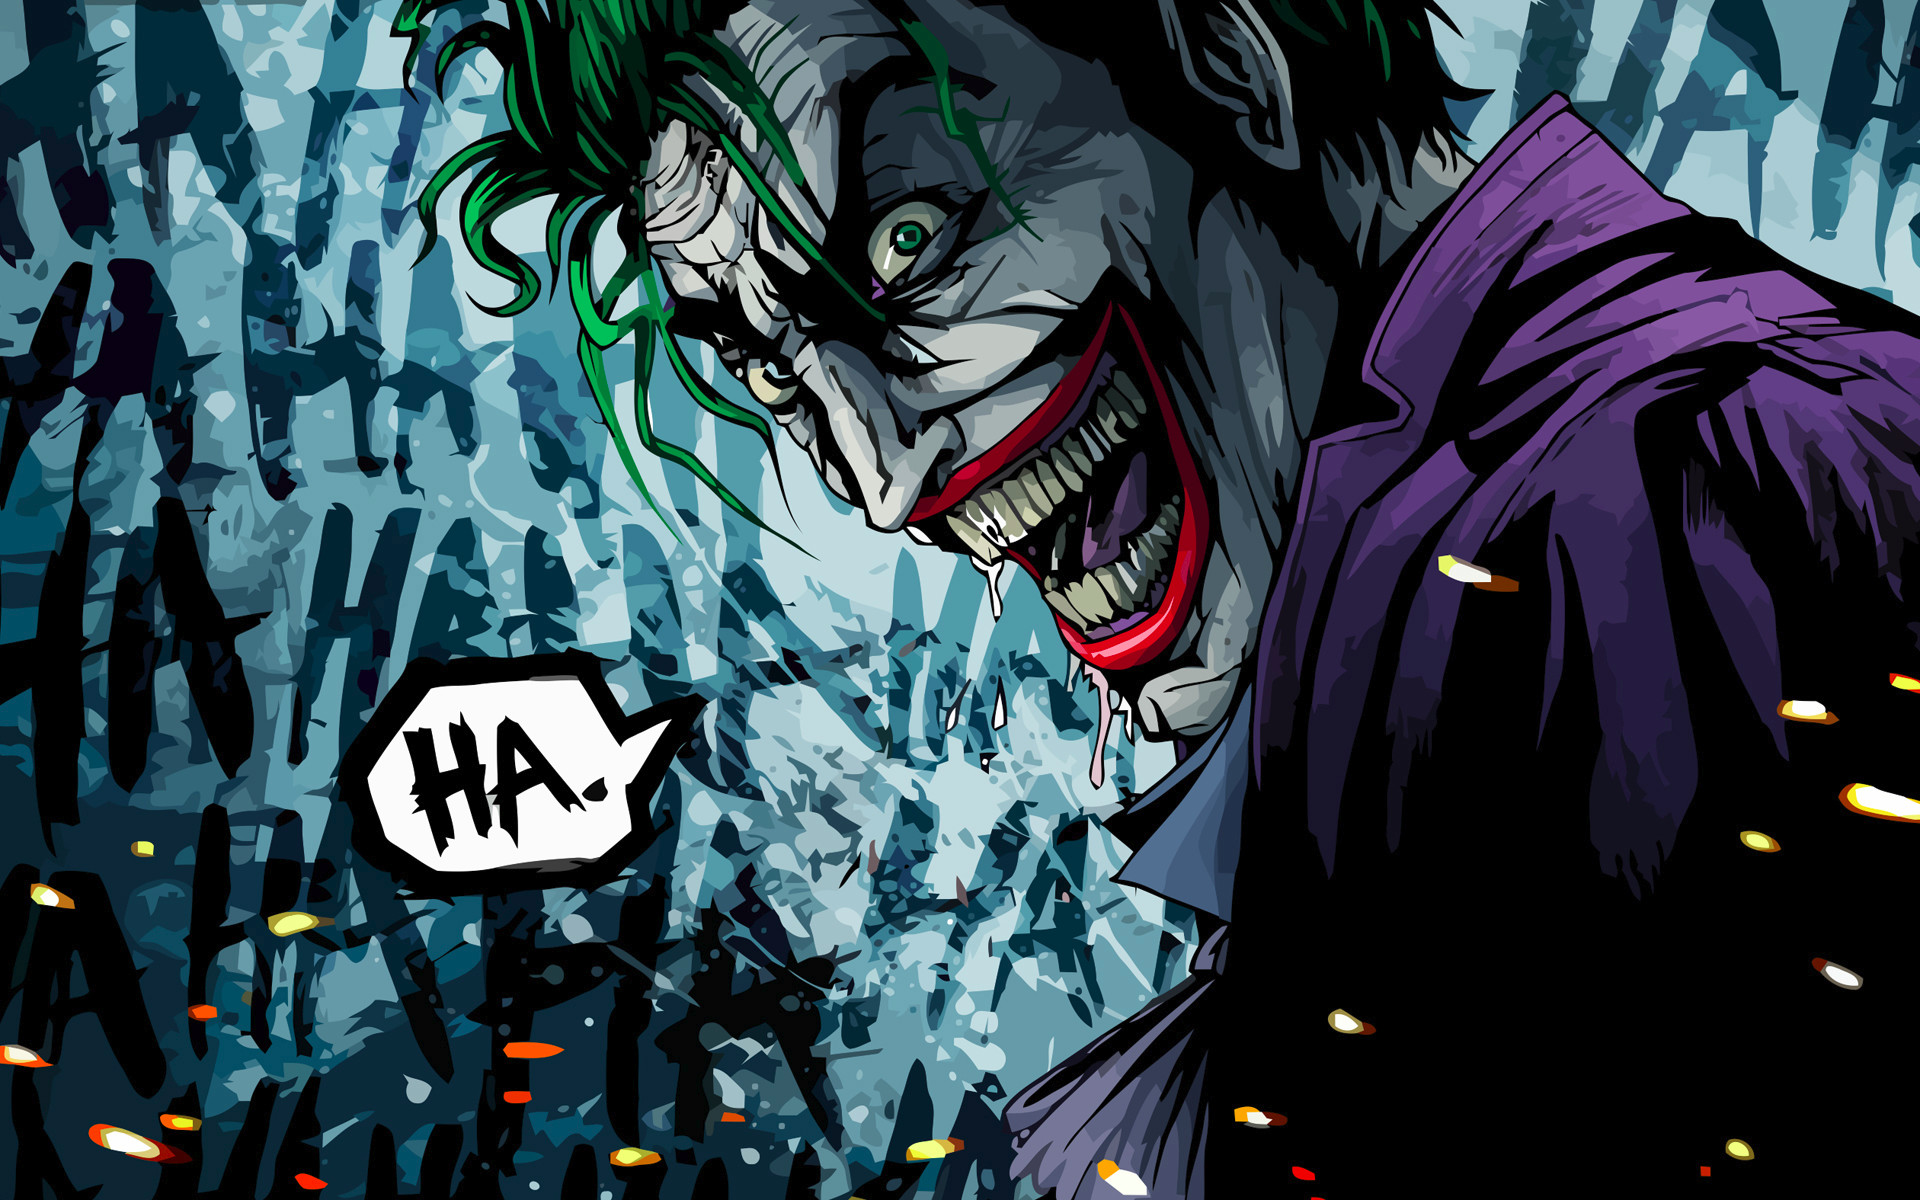 Beautiful Wallpaper Mac Joker - 411435-joker-hd-wallpaper-1920x1200-for-mac  Image_466188.jpg